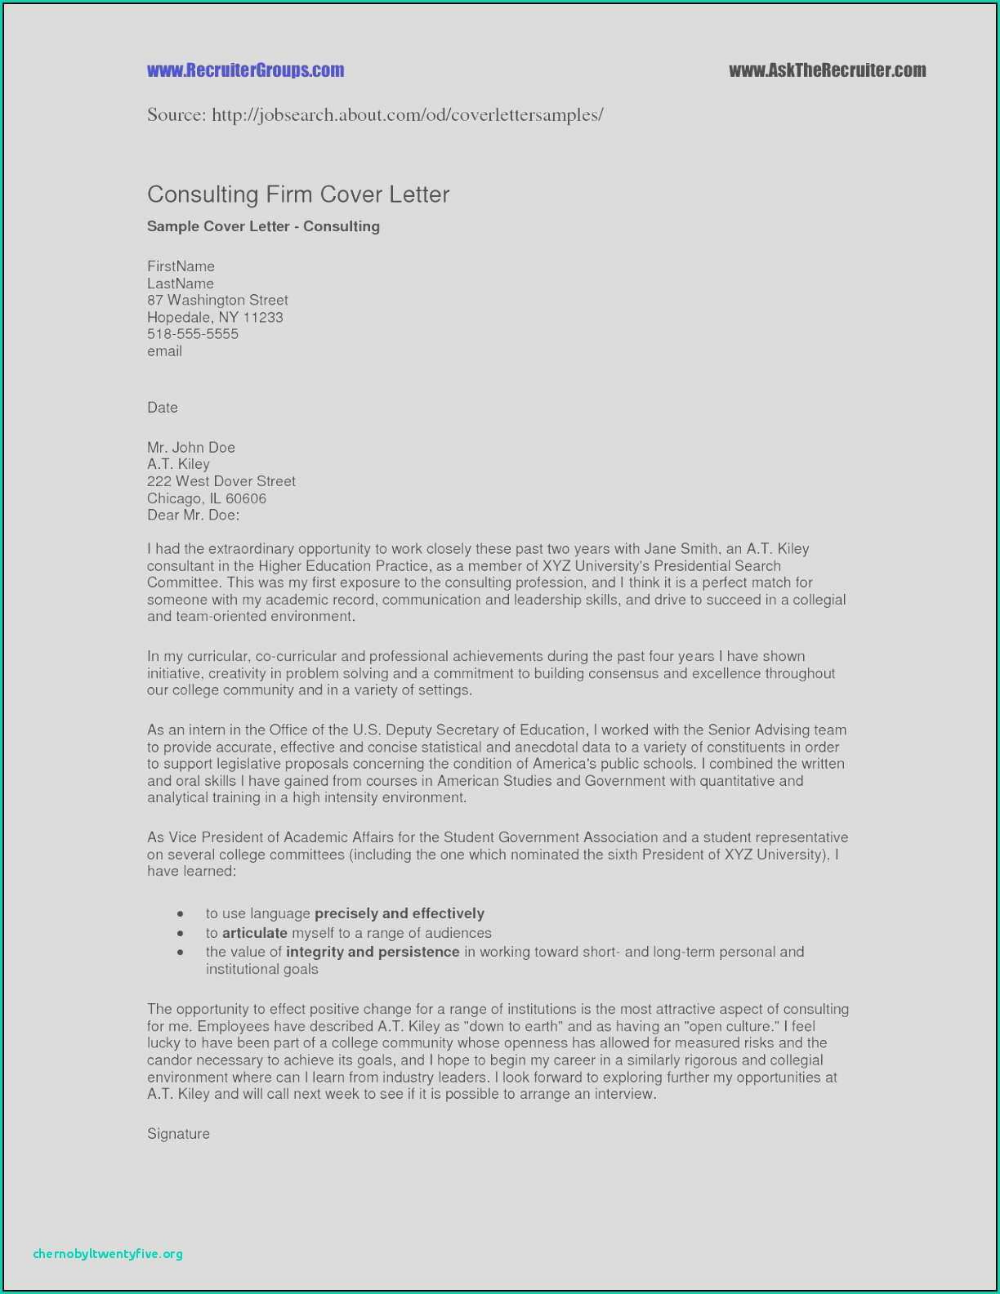 Esthetician Resume Example 2019 Cover Letters 2020 Click More Photo Resume Res Counselor Job Description Resume Examples Camp Counselor Job Description